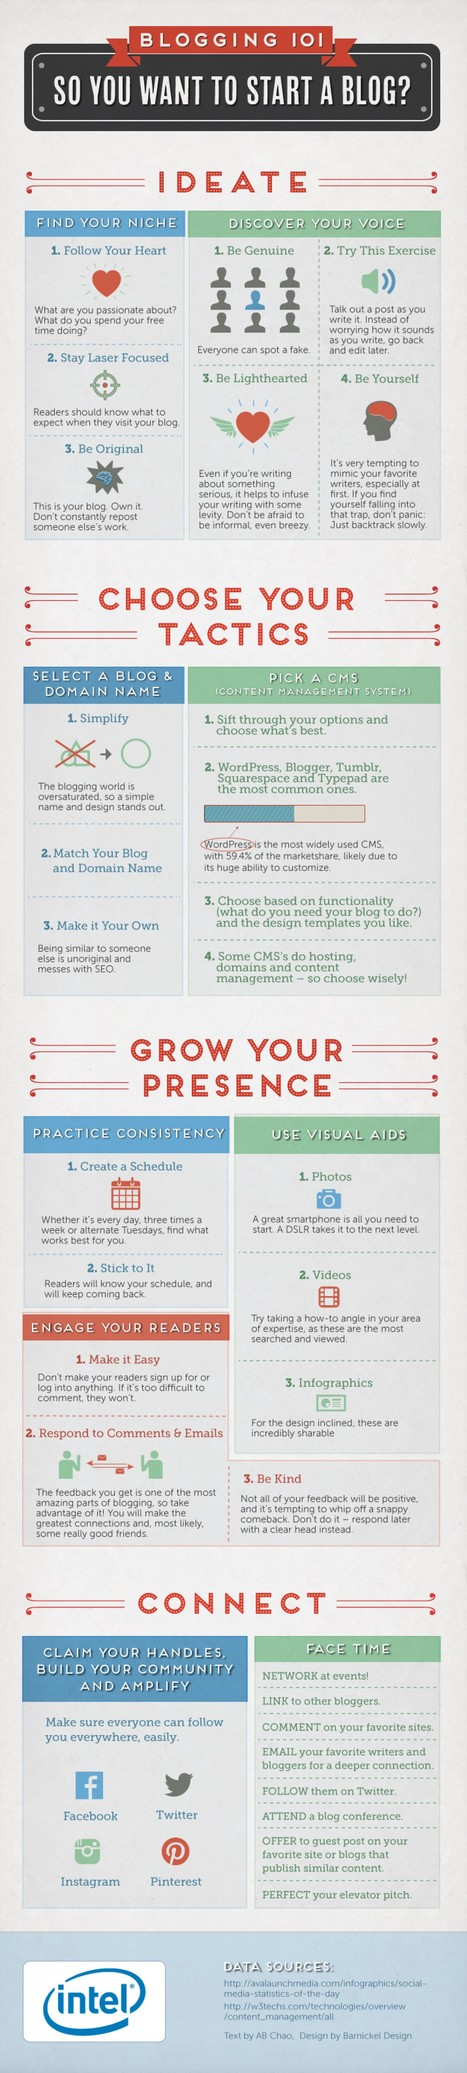 Blogging 101: So You Want to Start a Blog? | social media infographics and typography | Scoop.it